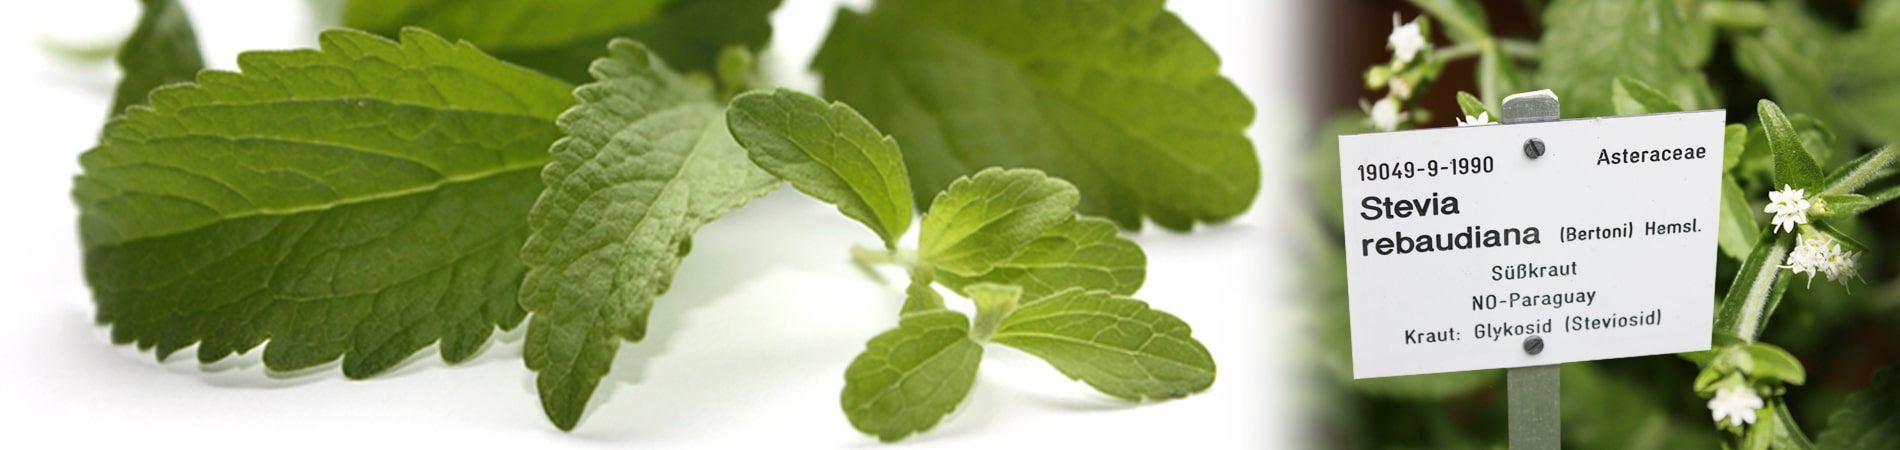 The home of the Stevia plant is Paraguay. Stevia rebaudiana is the botanical name and the plant is also called sweet leaf